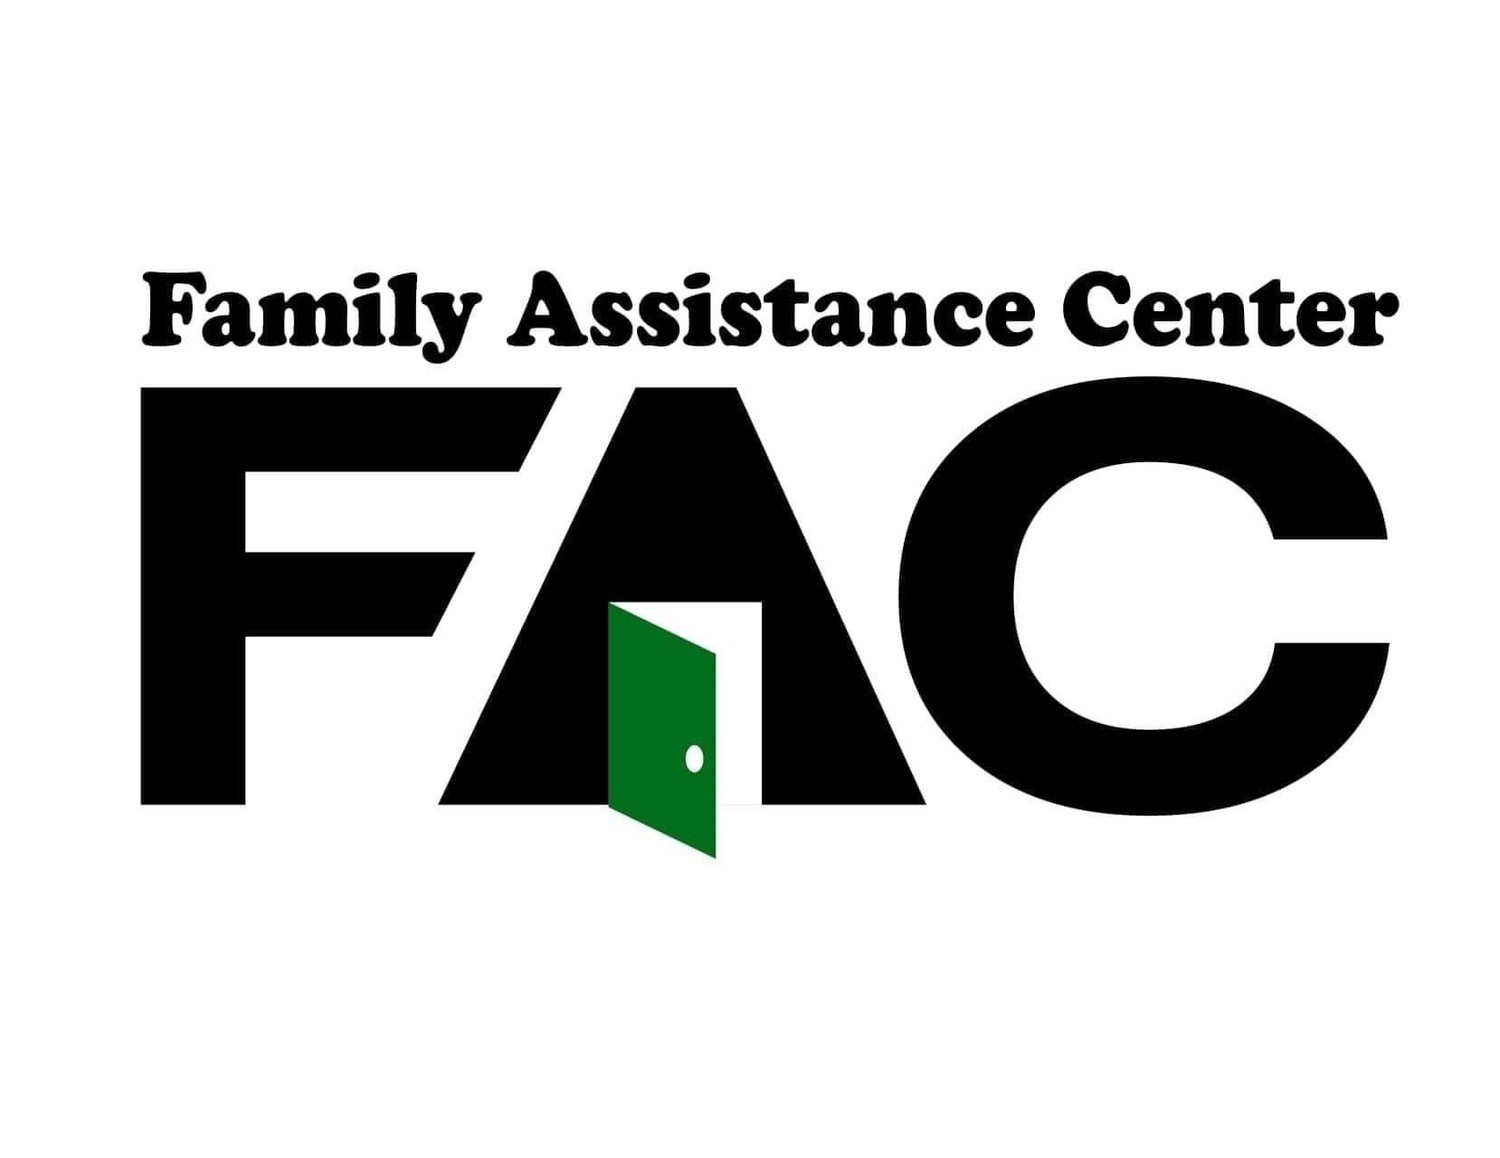 Family Assistance Center